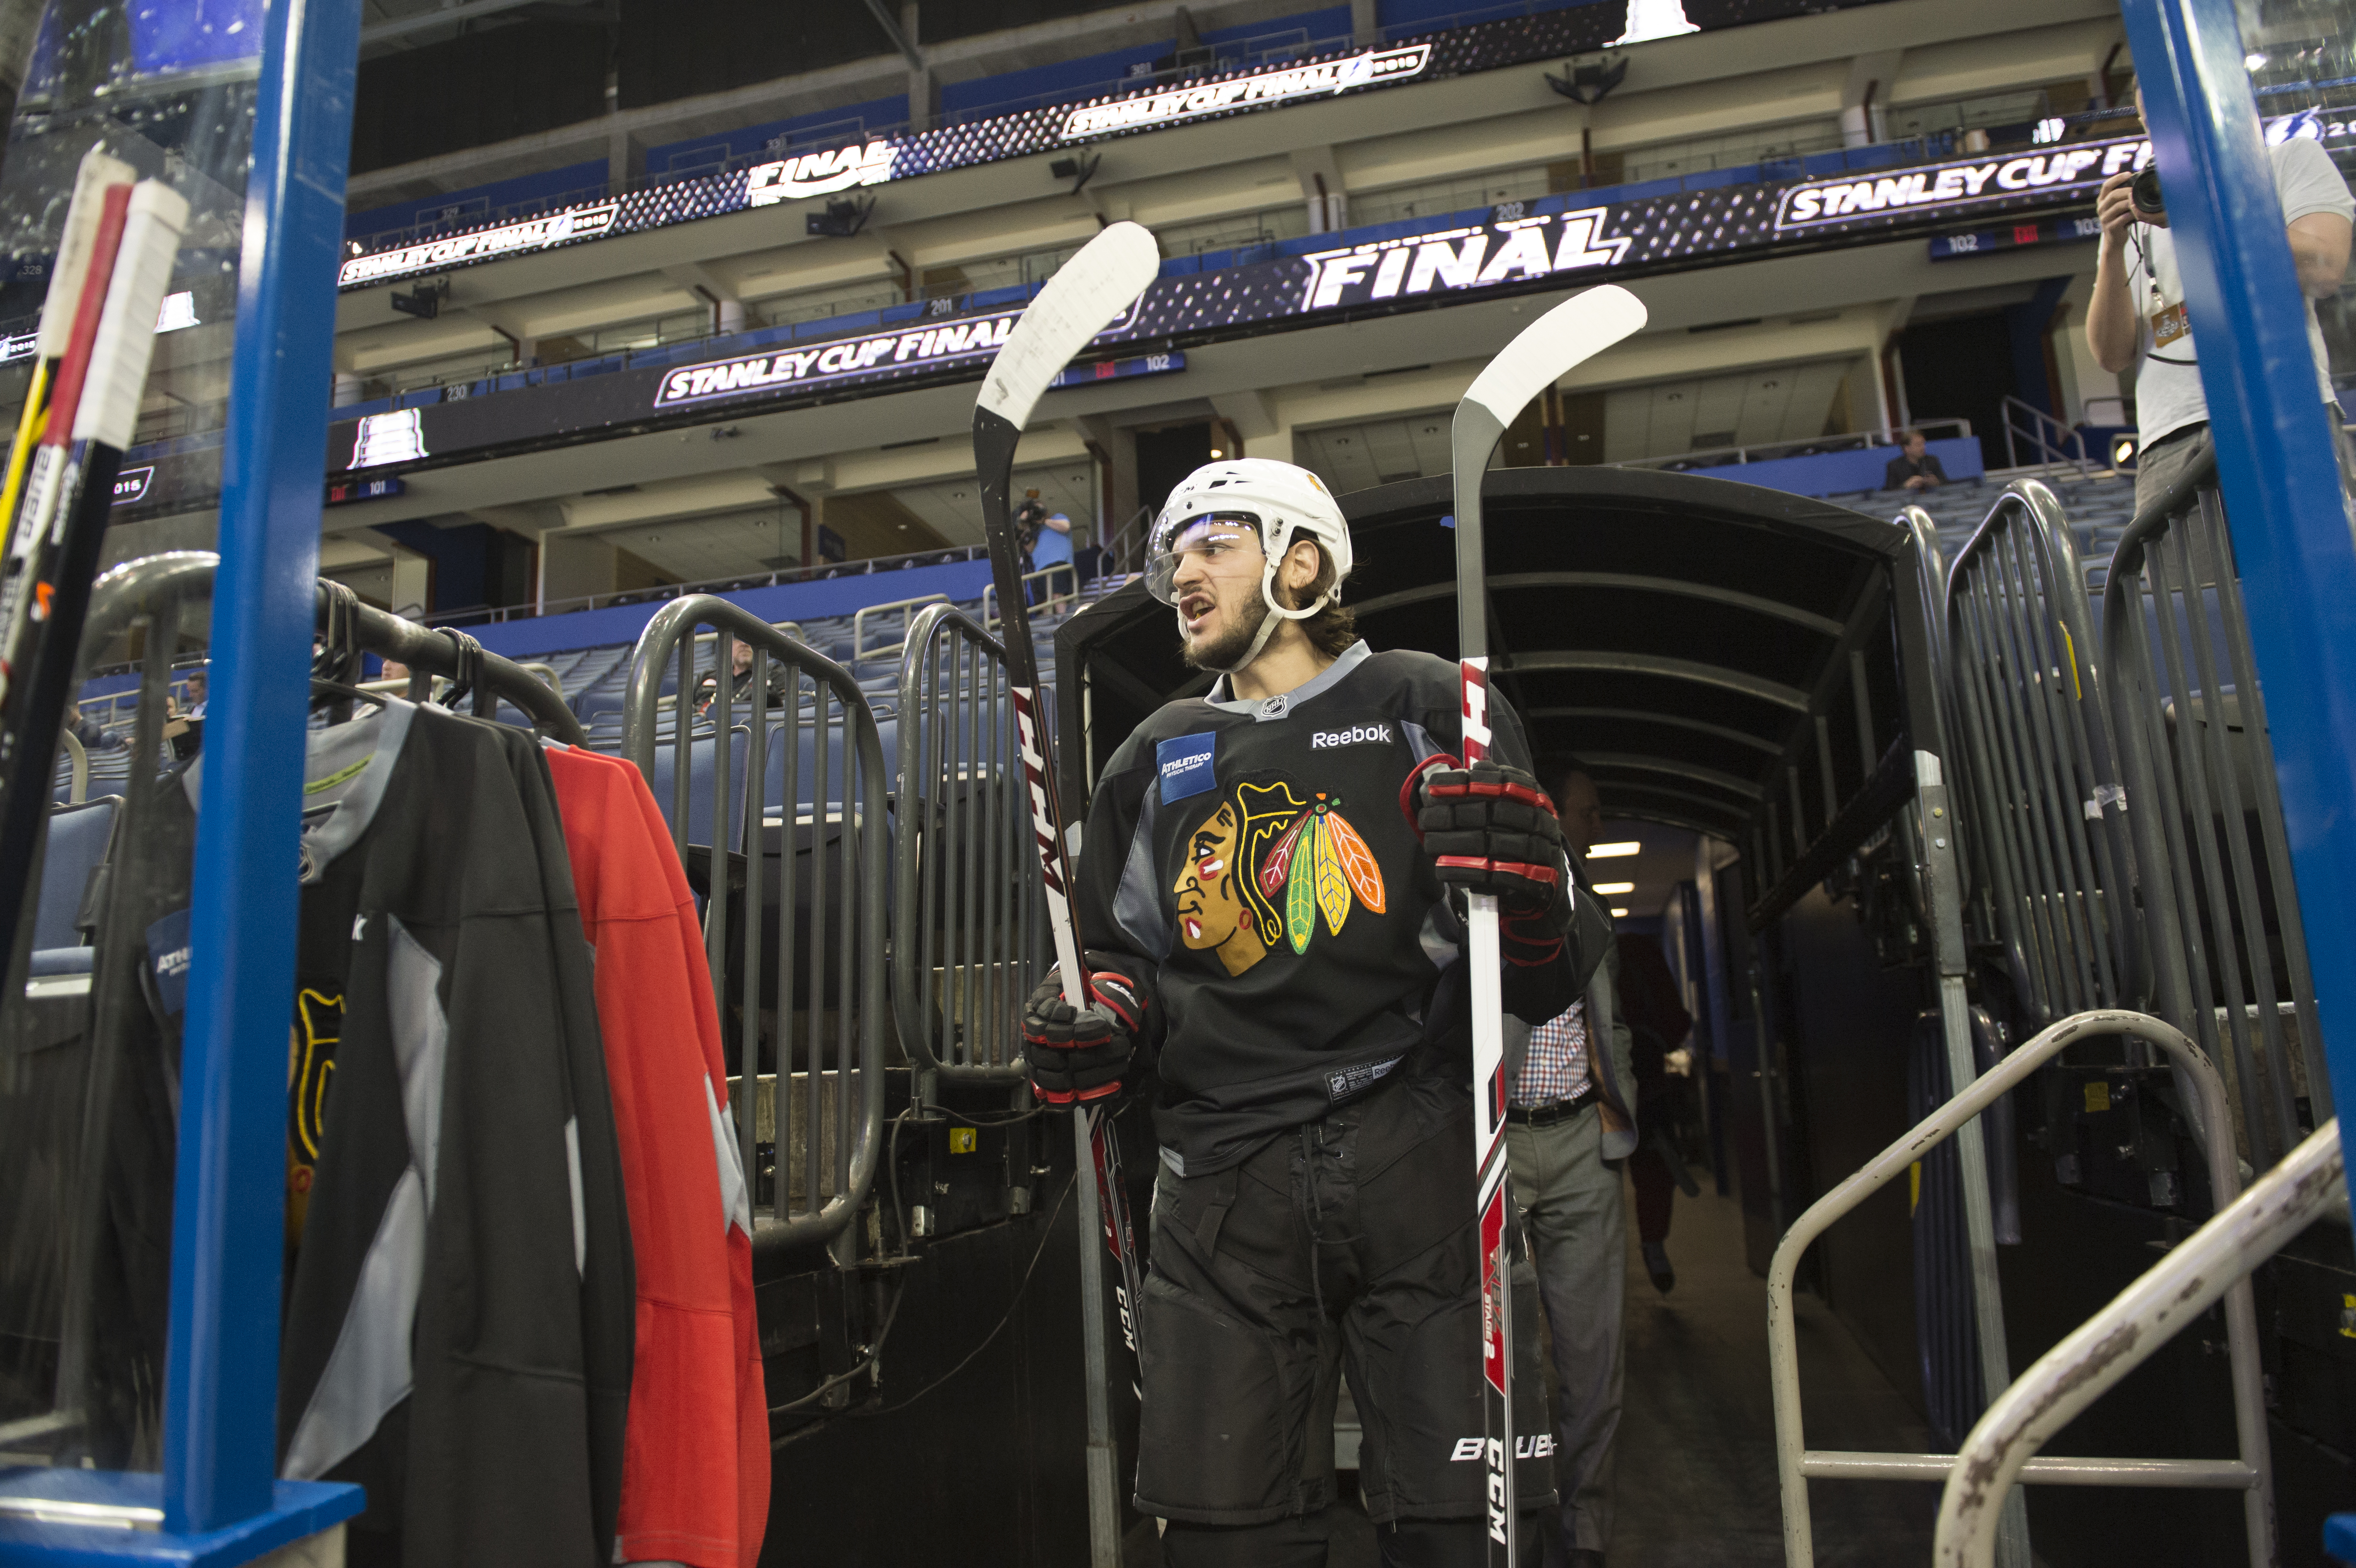 2015 NHL Stanley Cup Final - Practice Sessions